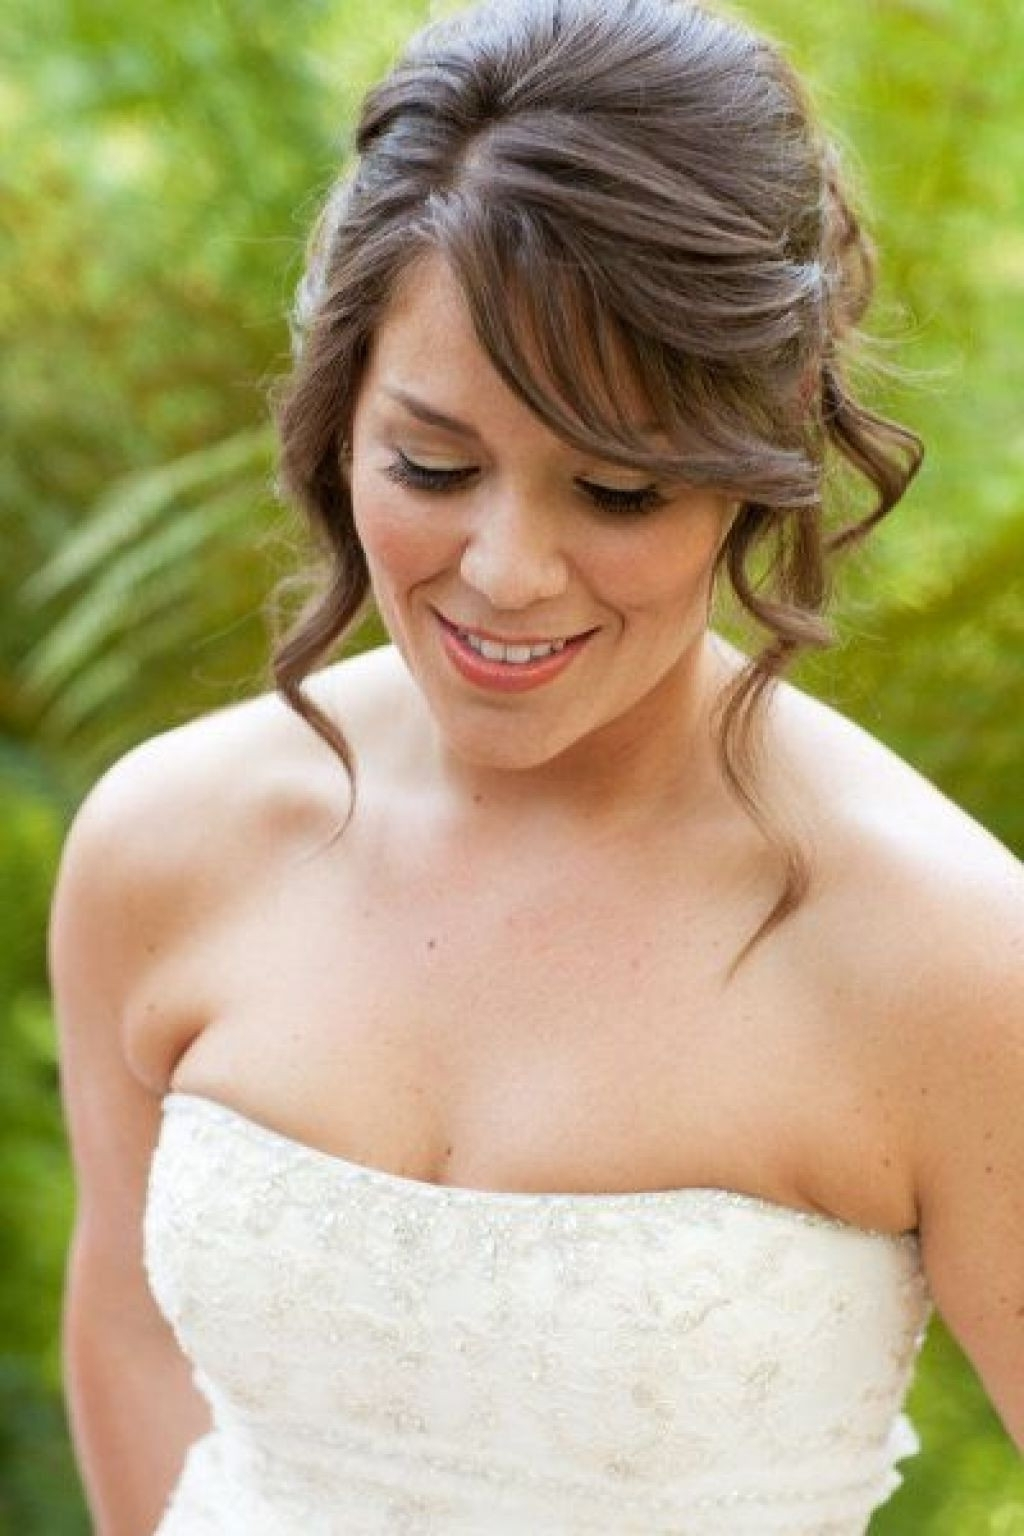 Mother Of The Bride Hairstyle For Medium Hair Hairstyles For Regarding Bride Updo Hairstyles (View 11 of 15)